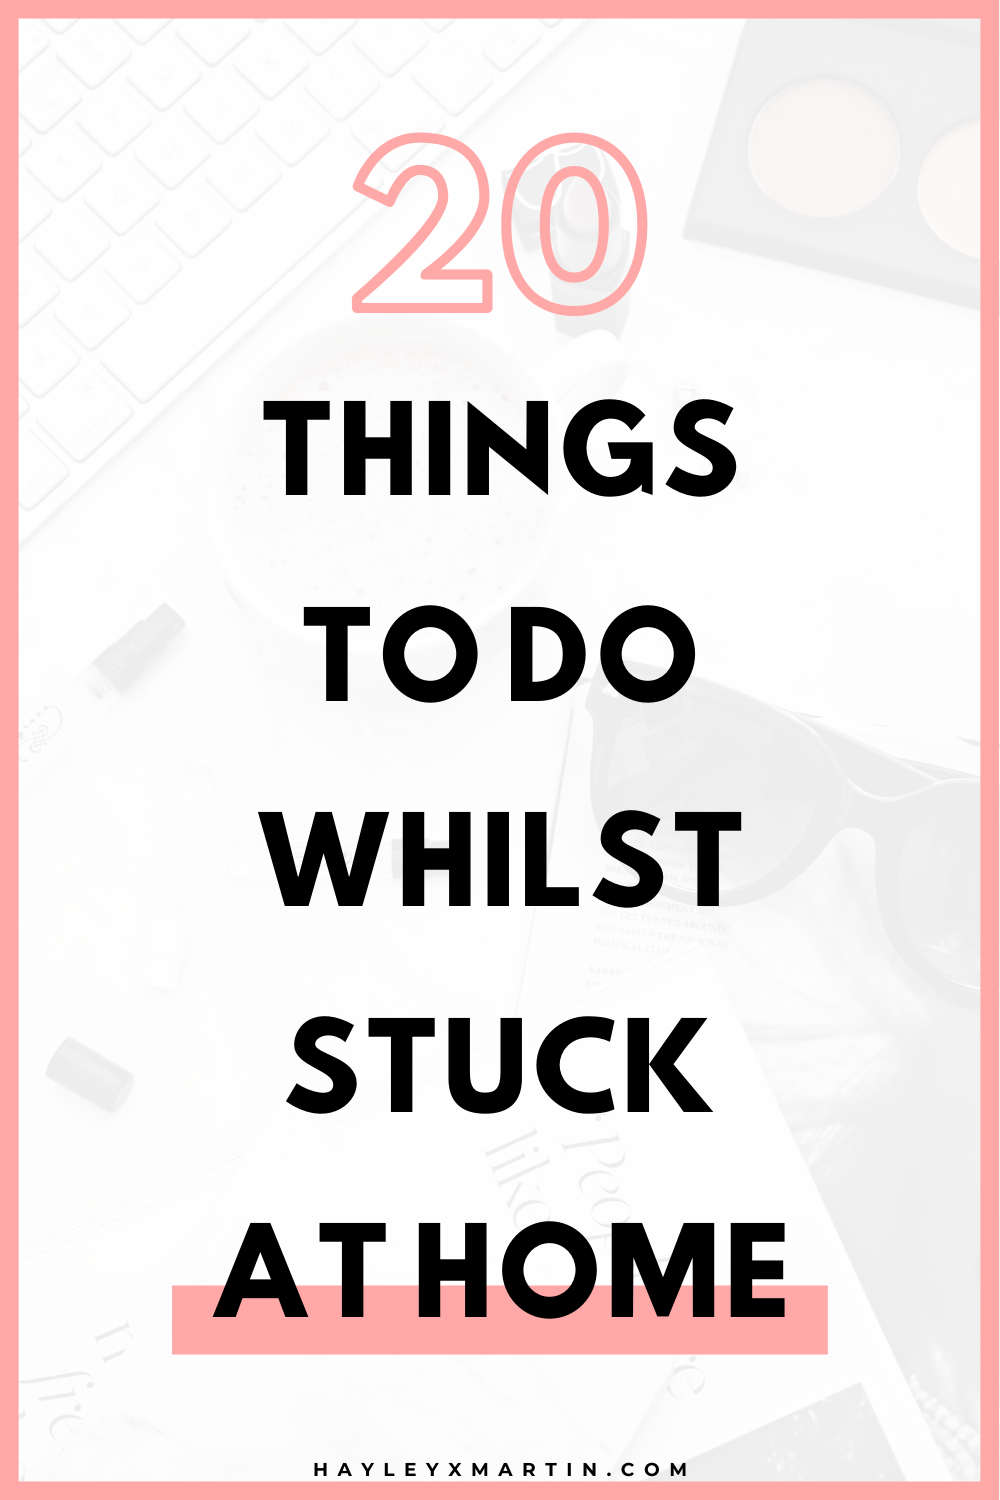 20 productive things to do at home | hayleyxmartin